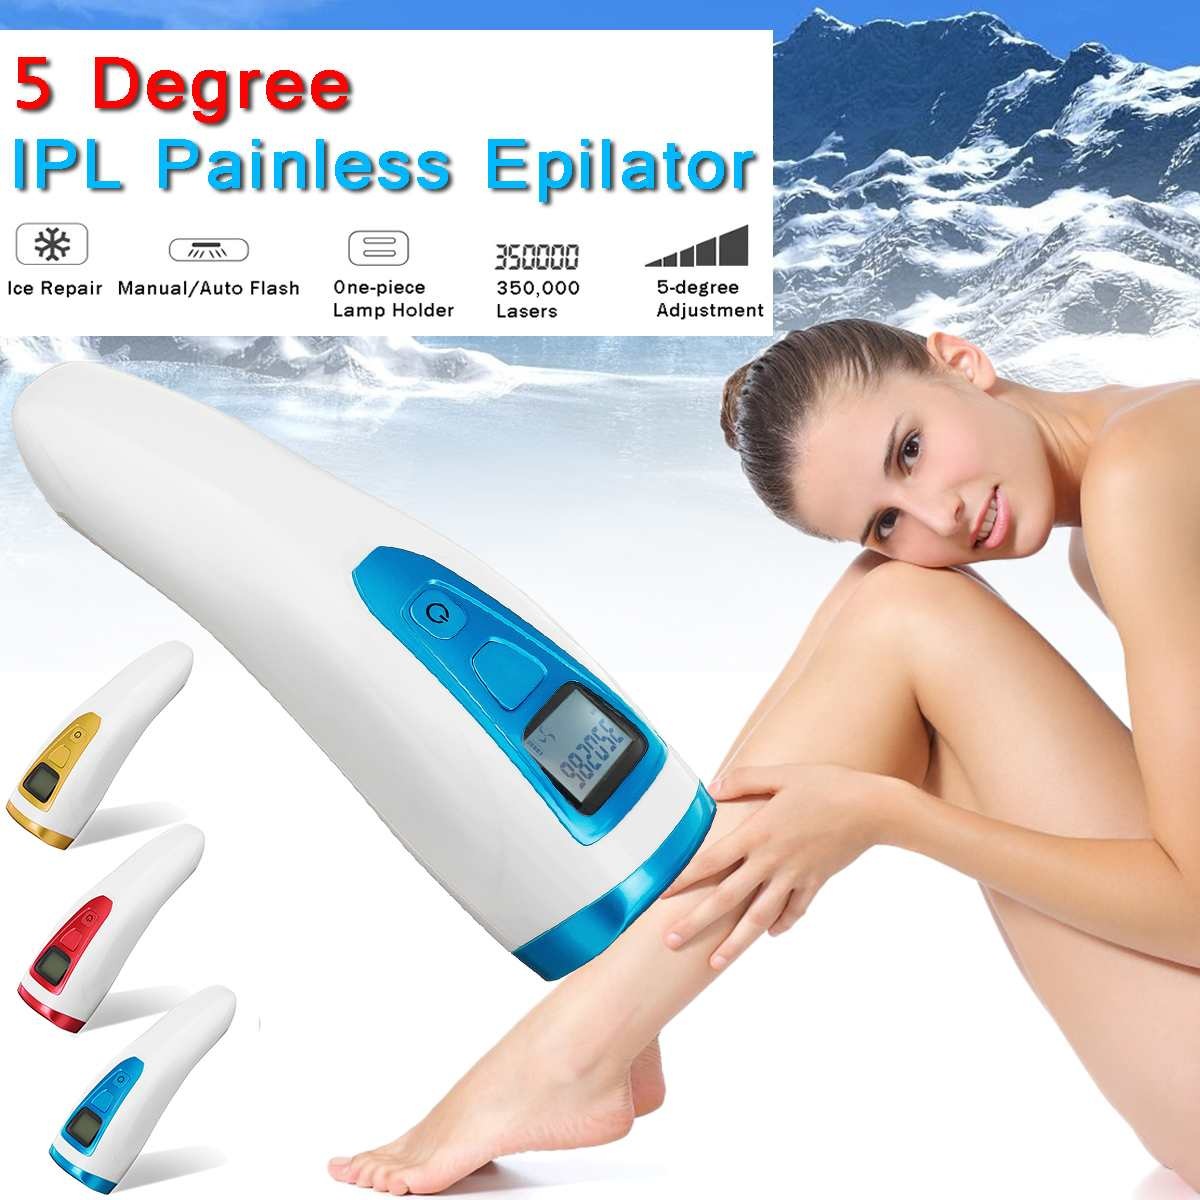 US/EU Plug 100-240V Painless Laser Hair Removal Epilator 5 Gears Mini Facial Bikini Armpit Permanent Device Permanent ColorsUS/EU Plug 100-240V Painless Laser Hair Removal Epilator 5 Gears Mini Facial Bikini Armpit Permanent Device Permanent Colors